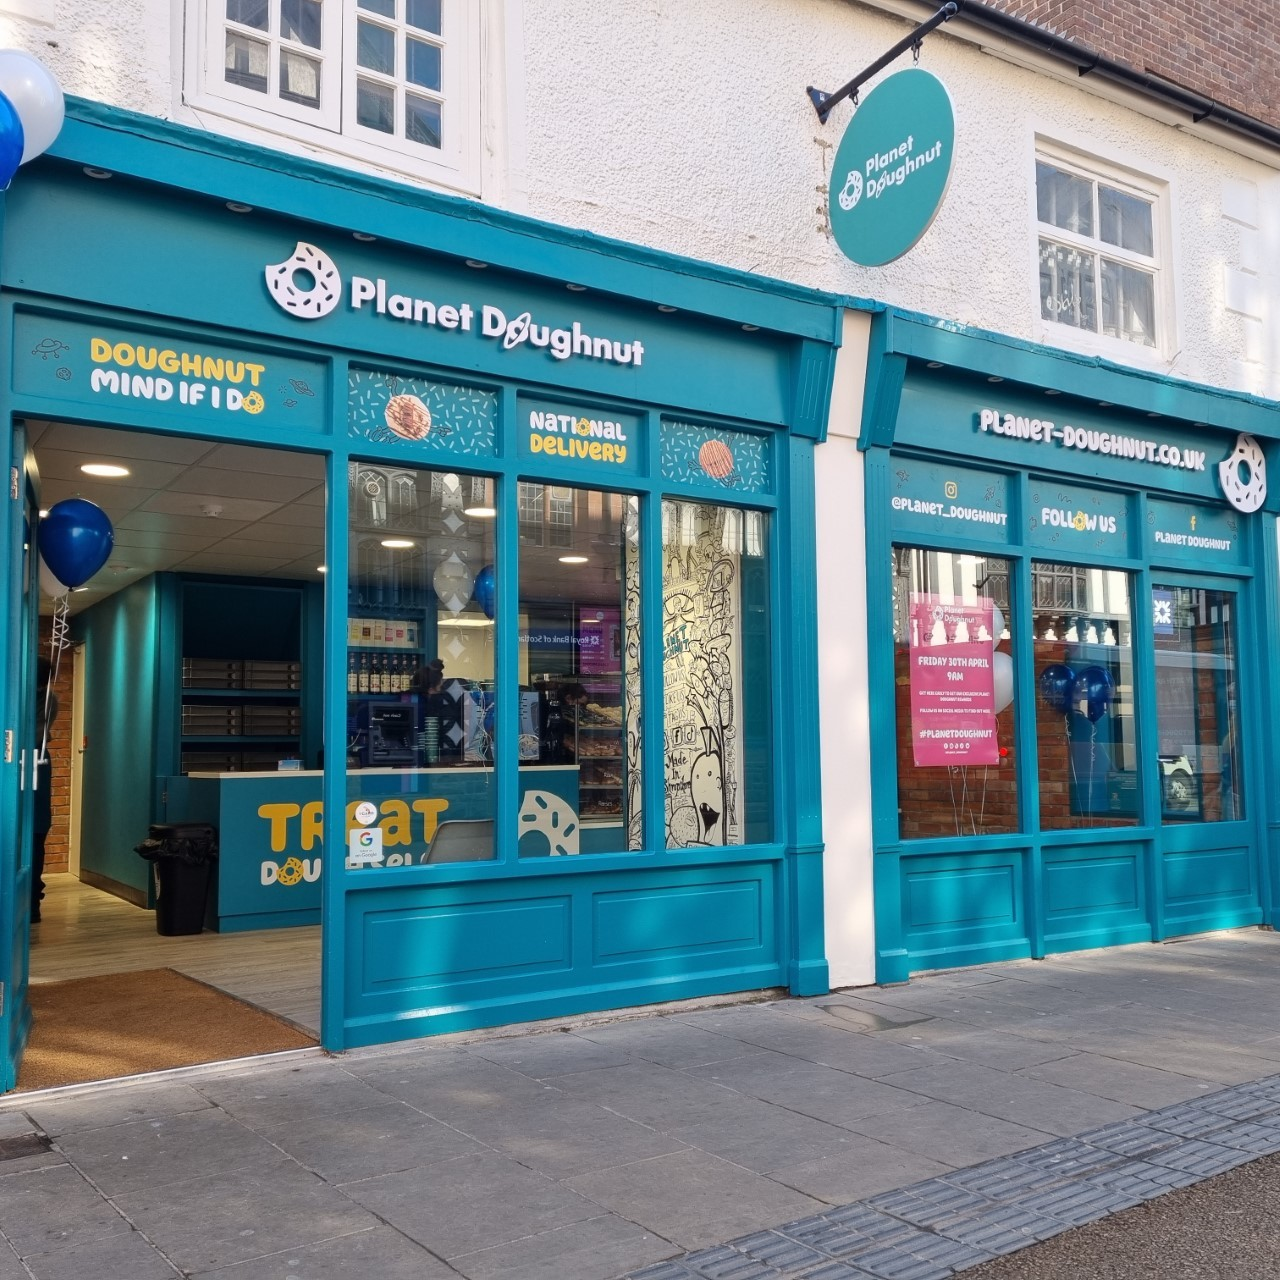 The new Planet Doughnut store in Chester.